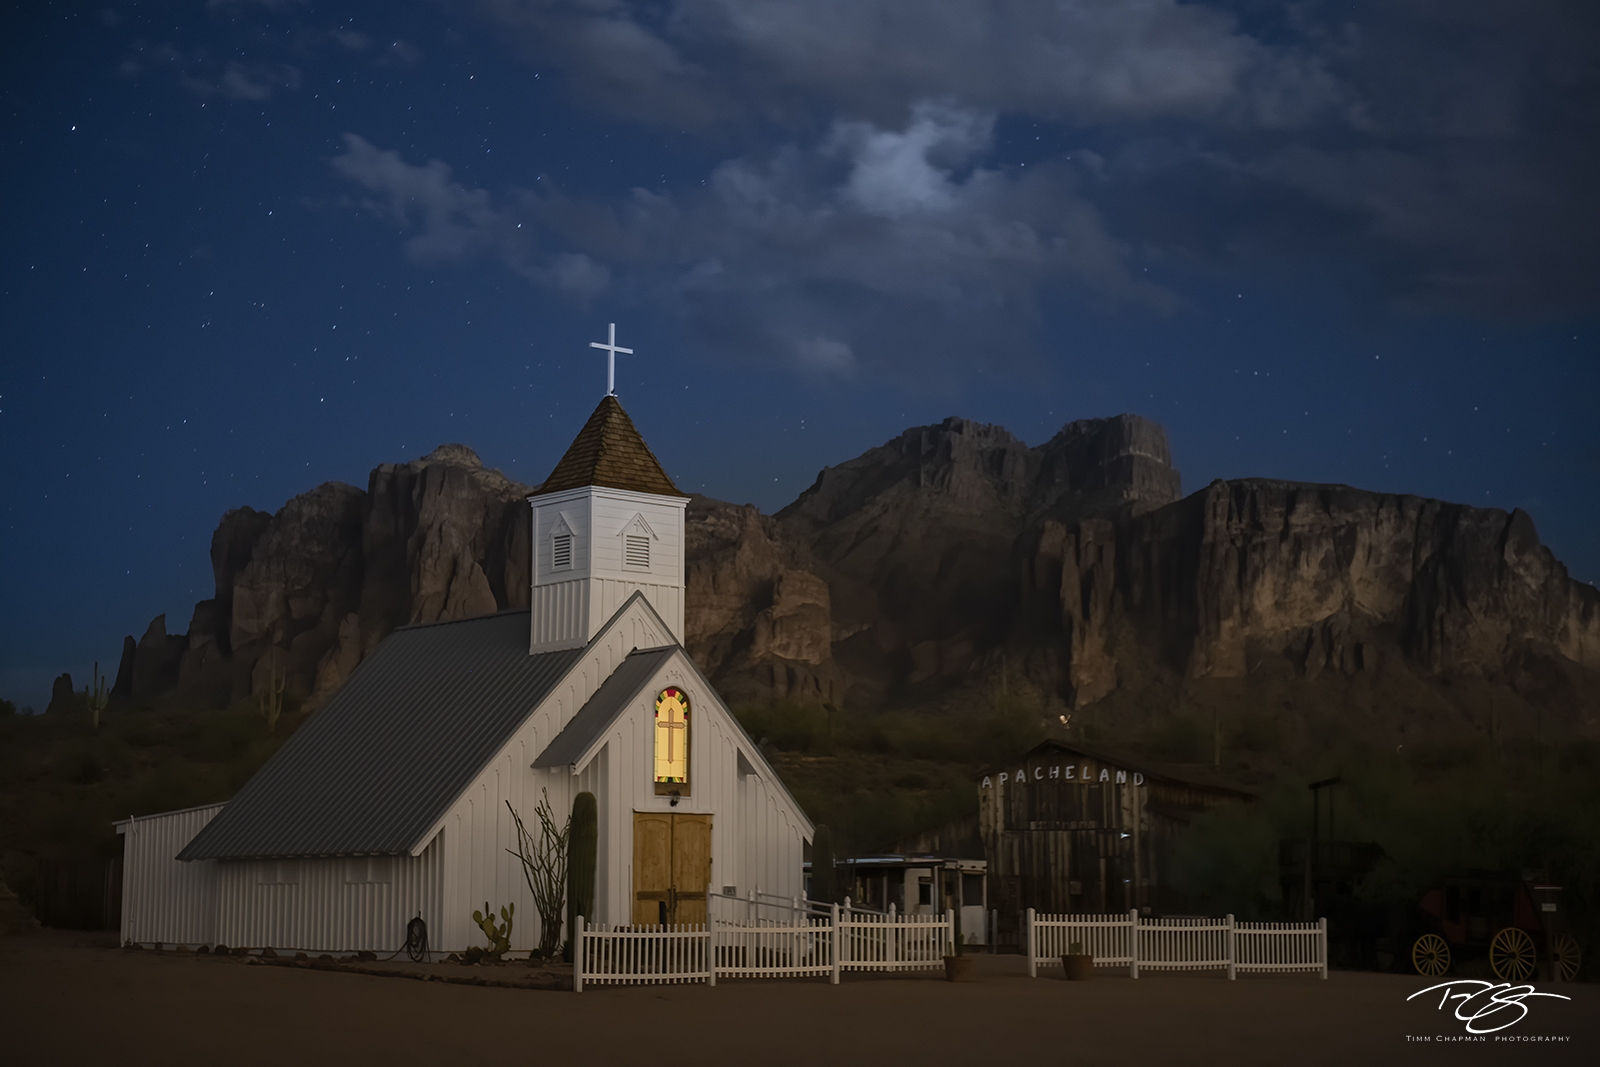 The Elvis Chapel lays solemn and quiet in Apacheland, at the foot of Superstition Mountain